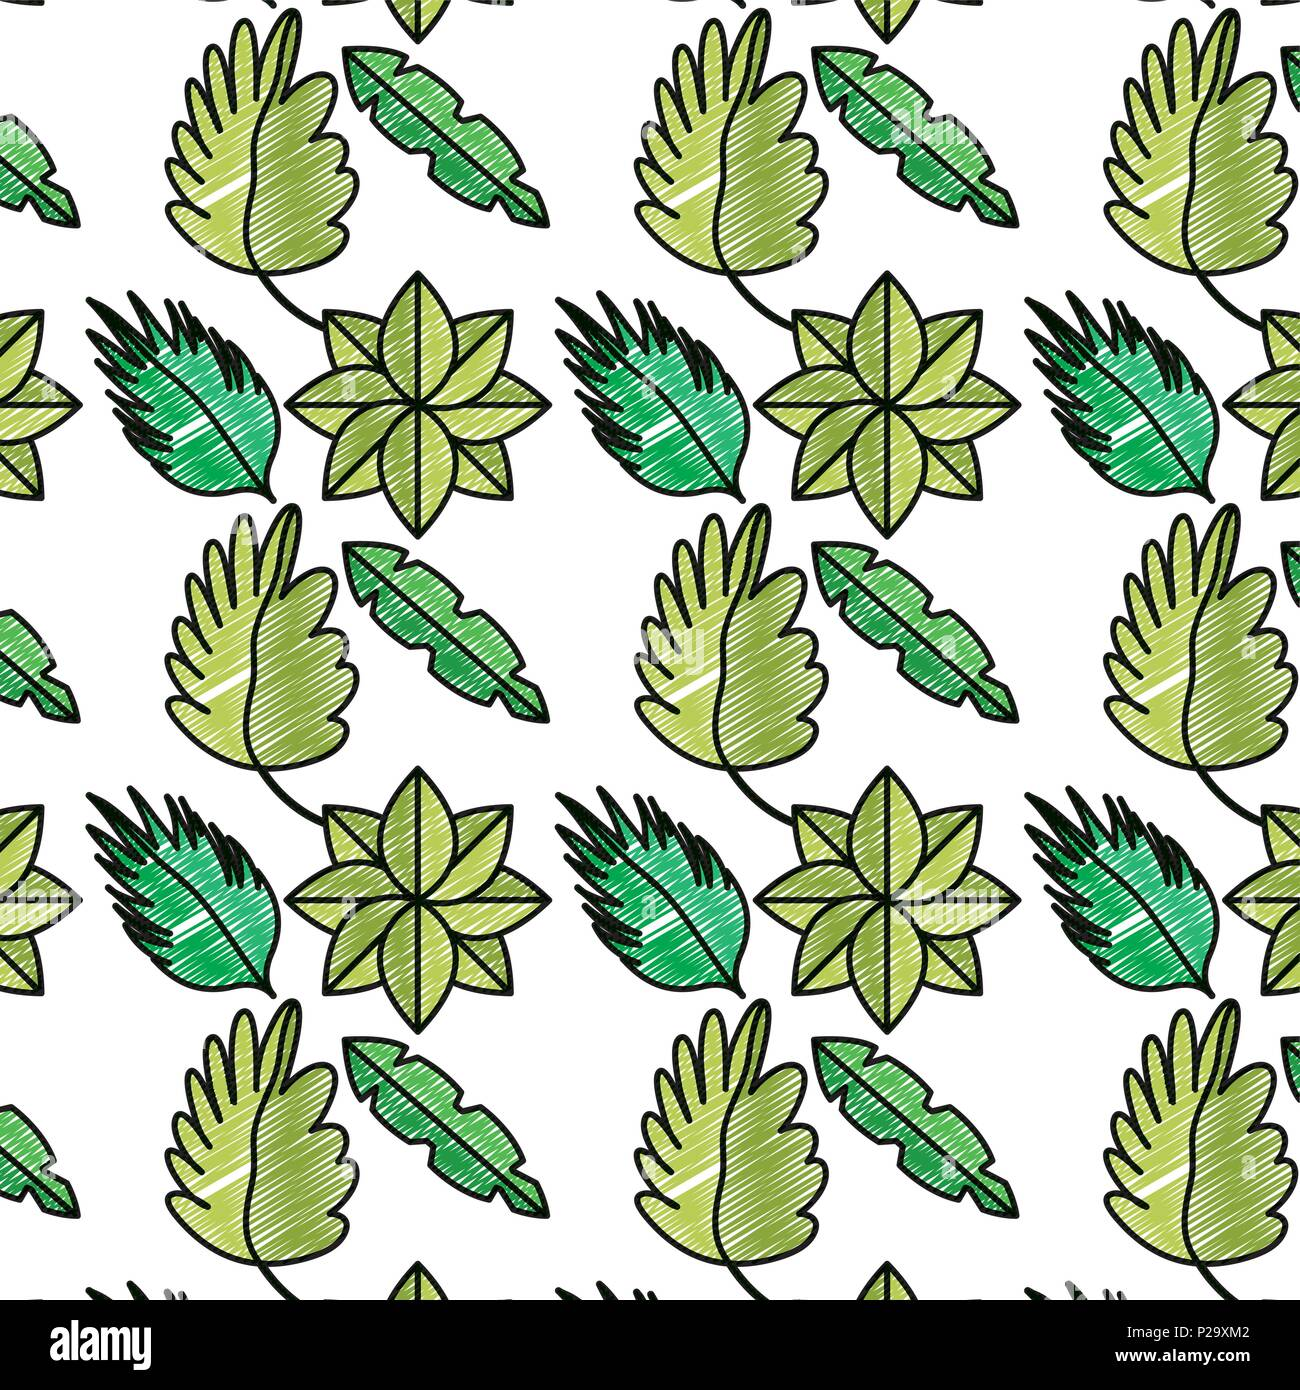 Doodle Natural Plants Tropical Leaves Background Stock Vector Image Art Alamy Works as a background where you can add images or text. alamy